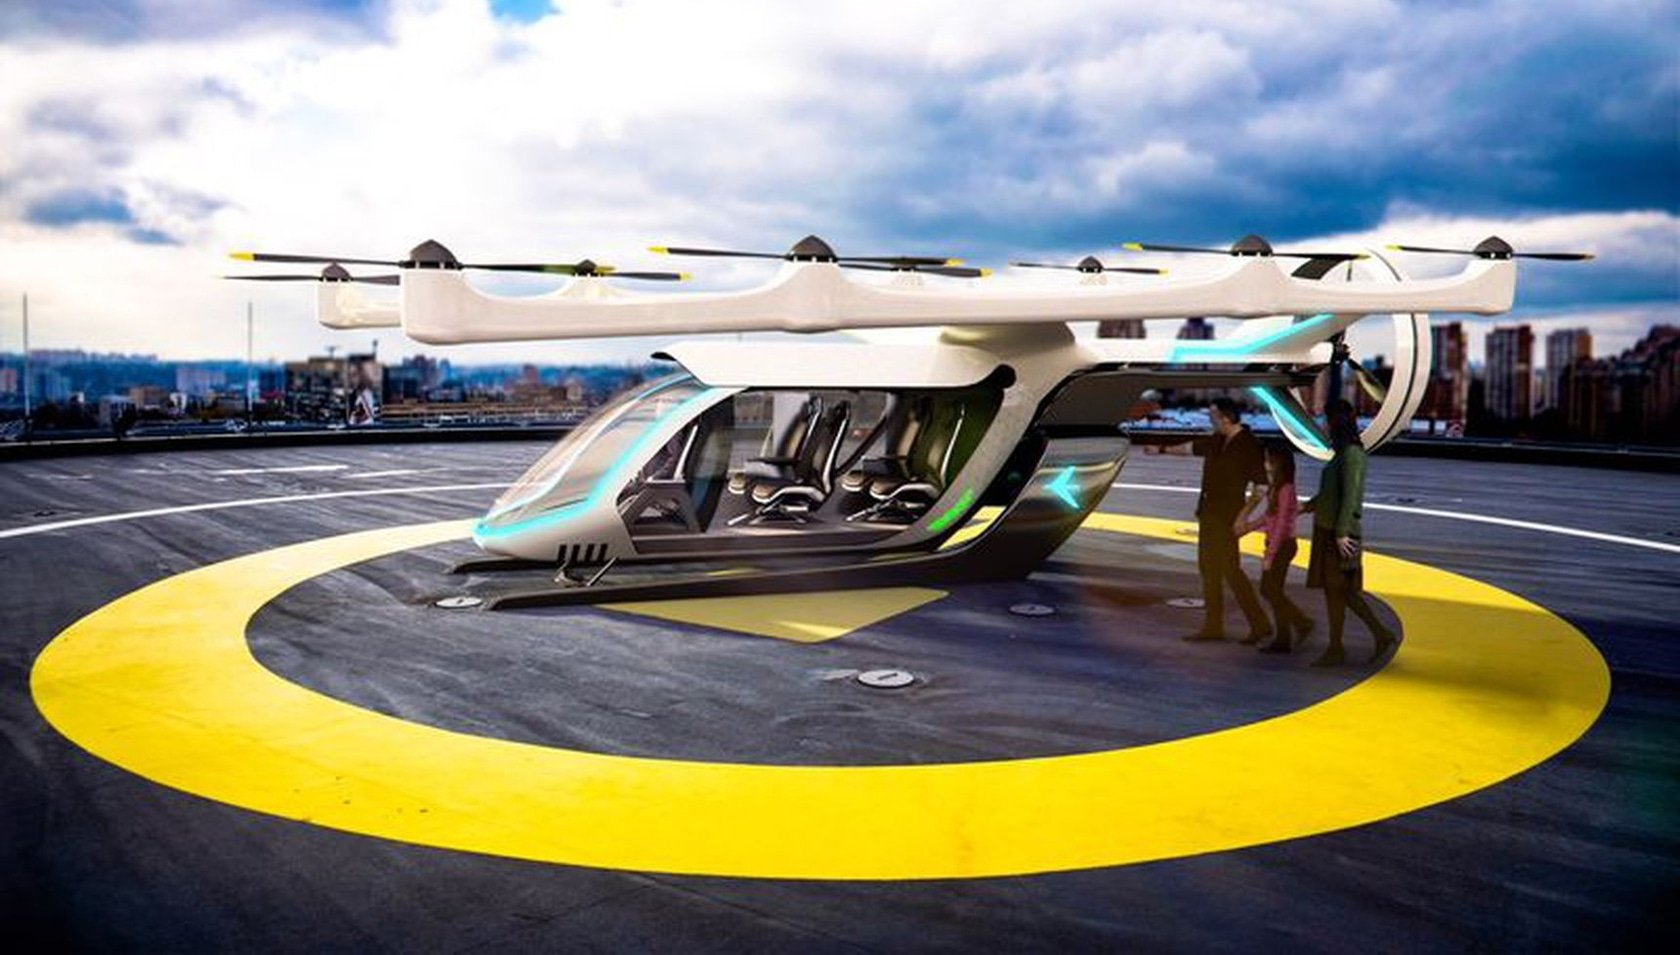 Maybe this idea might get off the ground – Uber takes to the skies | The Thaiger